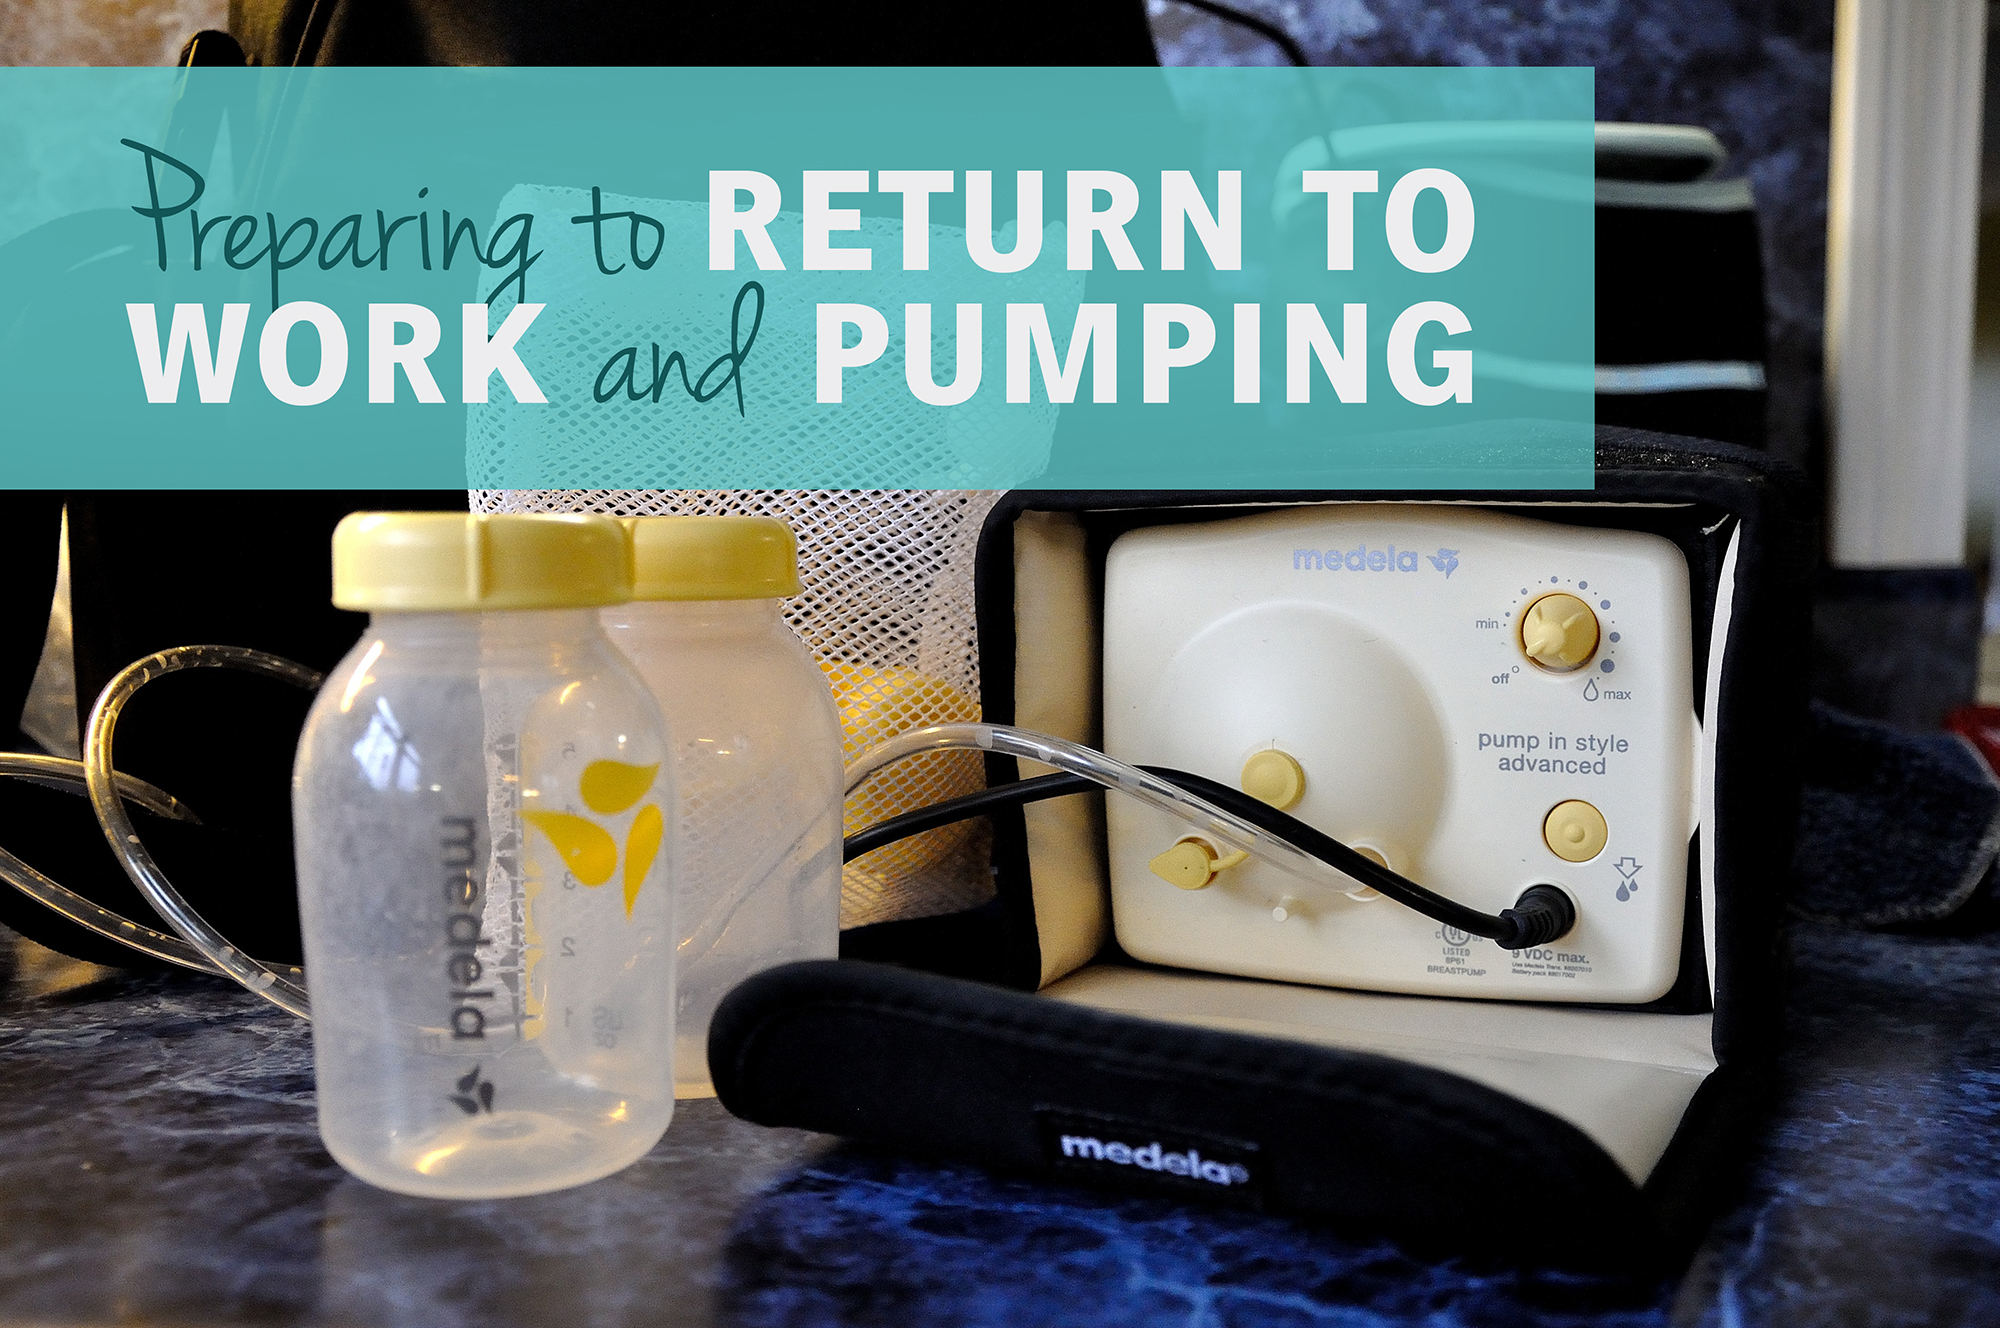 Returning to Work and Pumping - Kohler Created